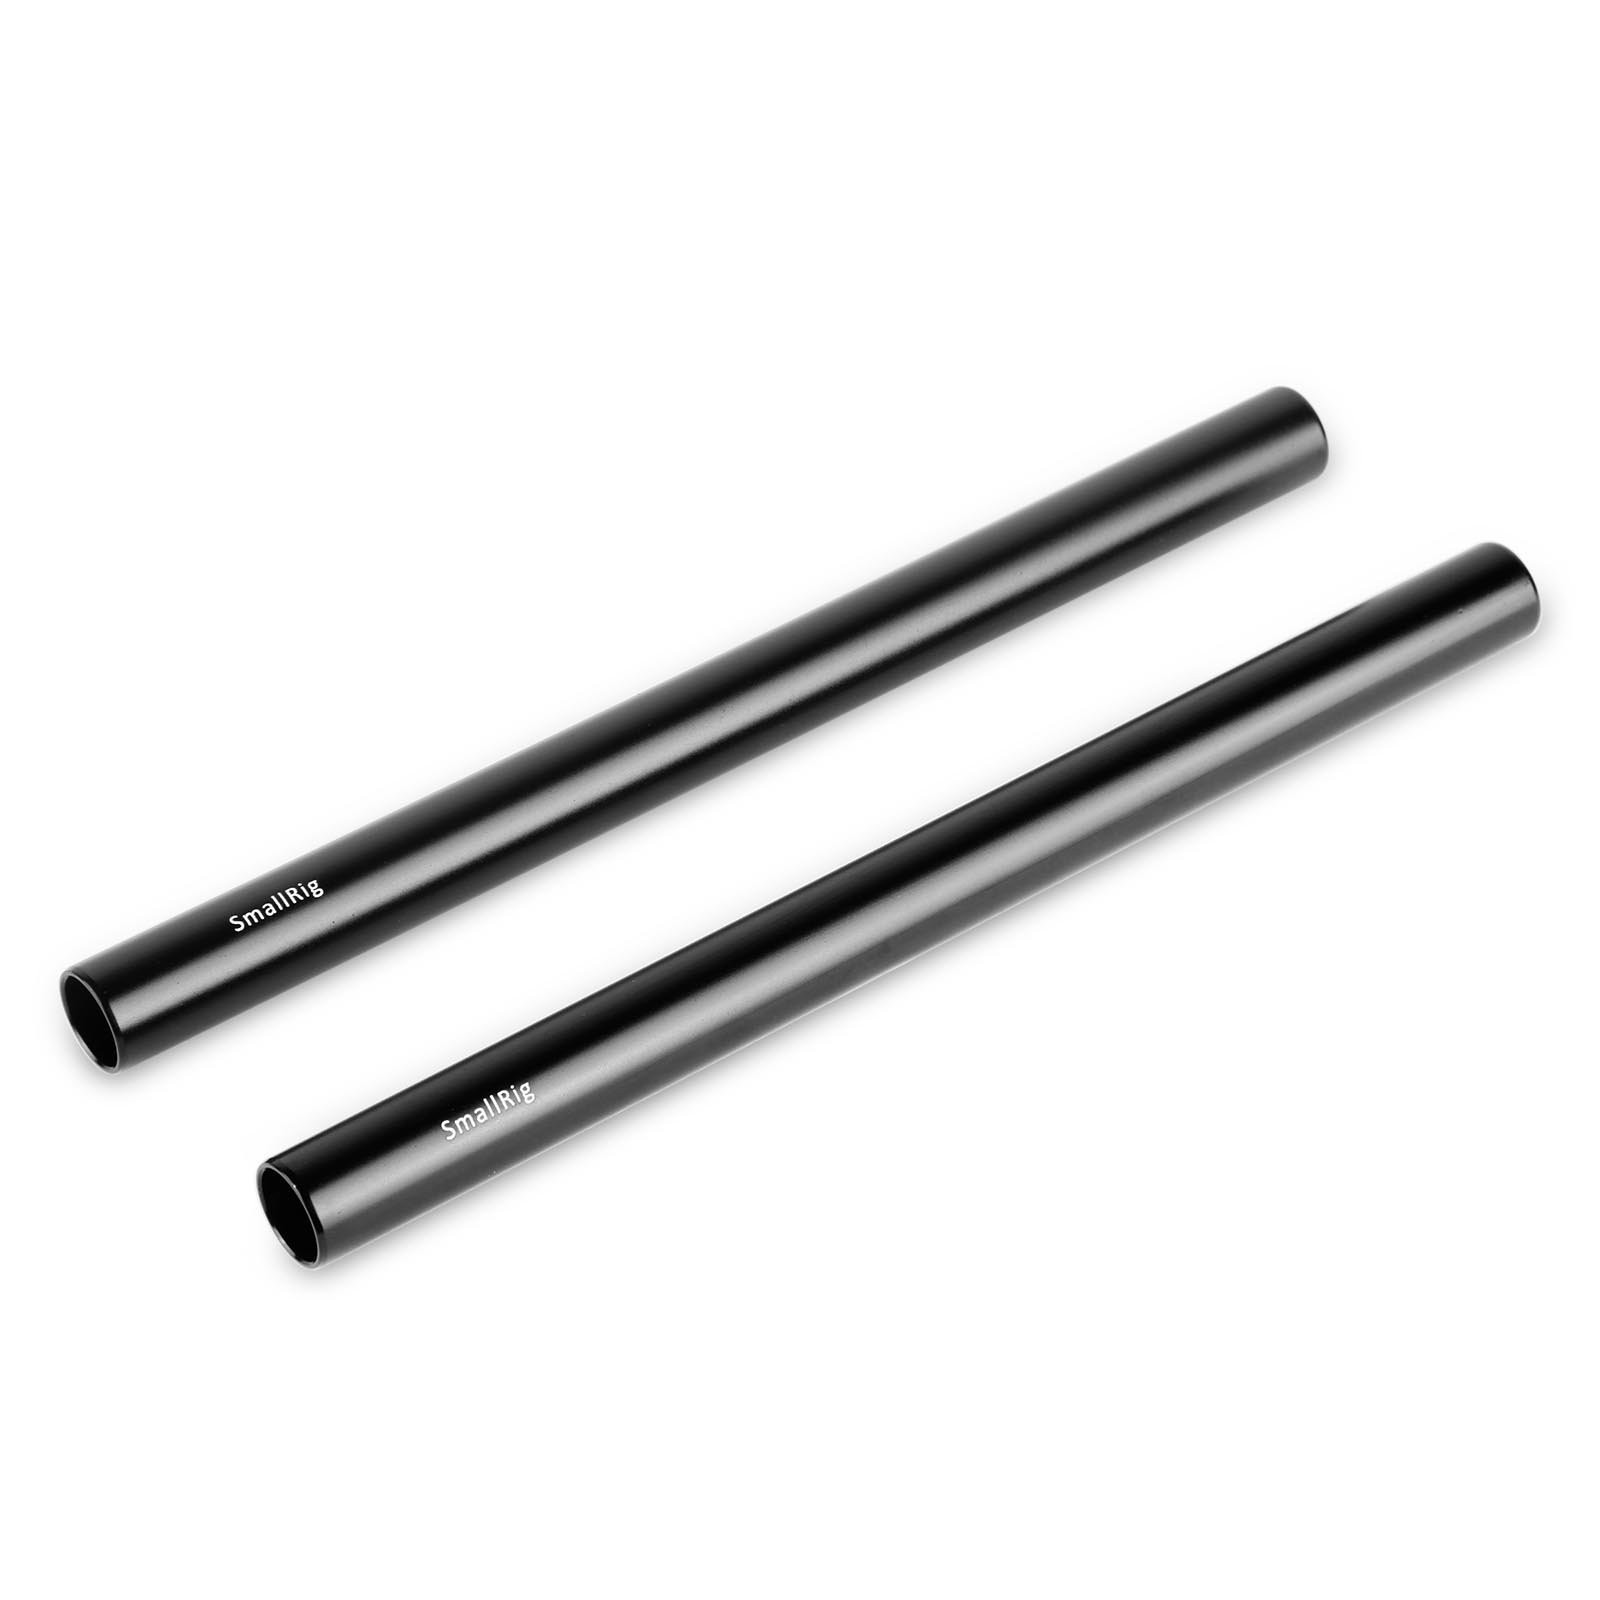 SMALLRIG 15mm Camera Rods (8 Inch) for 15mm Rail Rod Support System, 15mm Rod Clamps, 15mm Offset, 15mm Matte Box, 15mm Follow Focus - 1051 by SMALLRIG